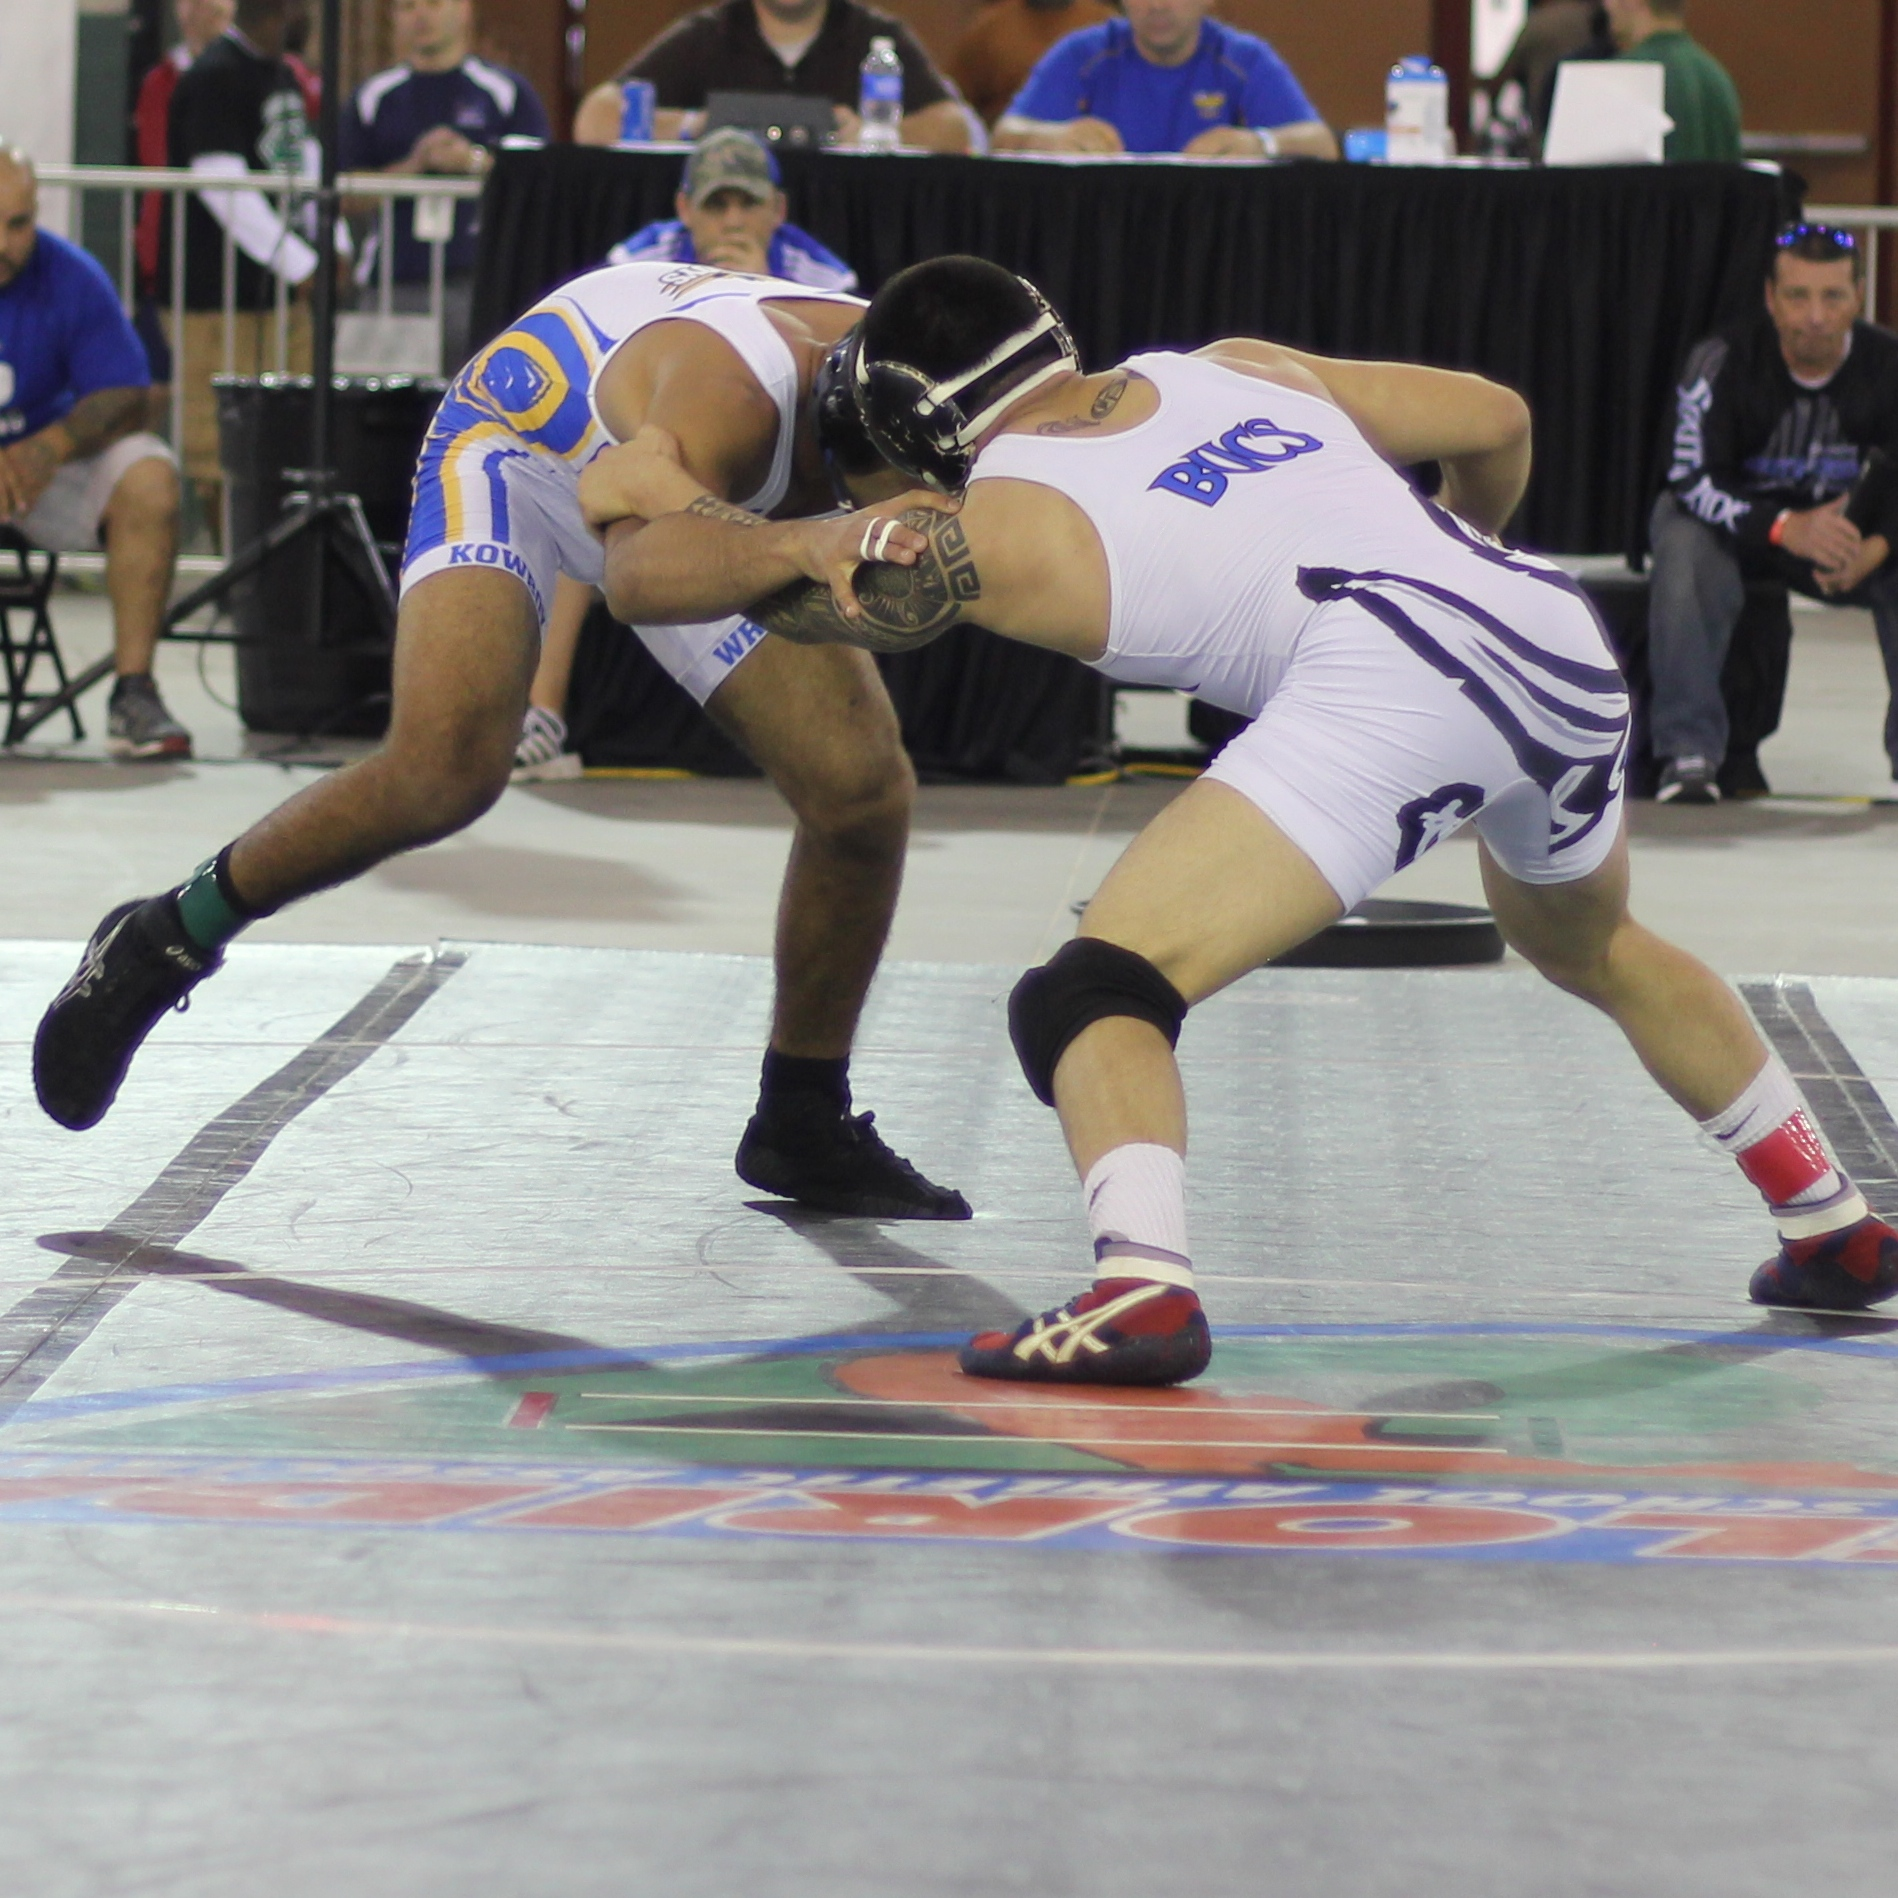 Lugo downed Bonilla 16-4 to win the 2015 3A 152 lb. title